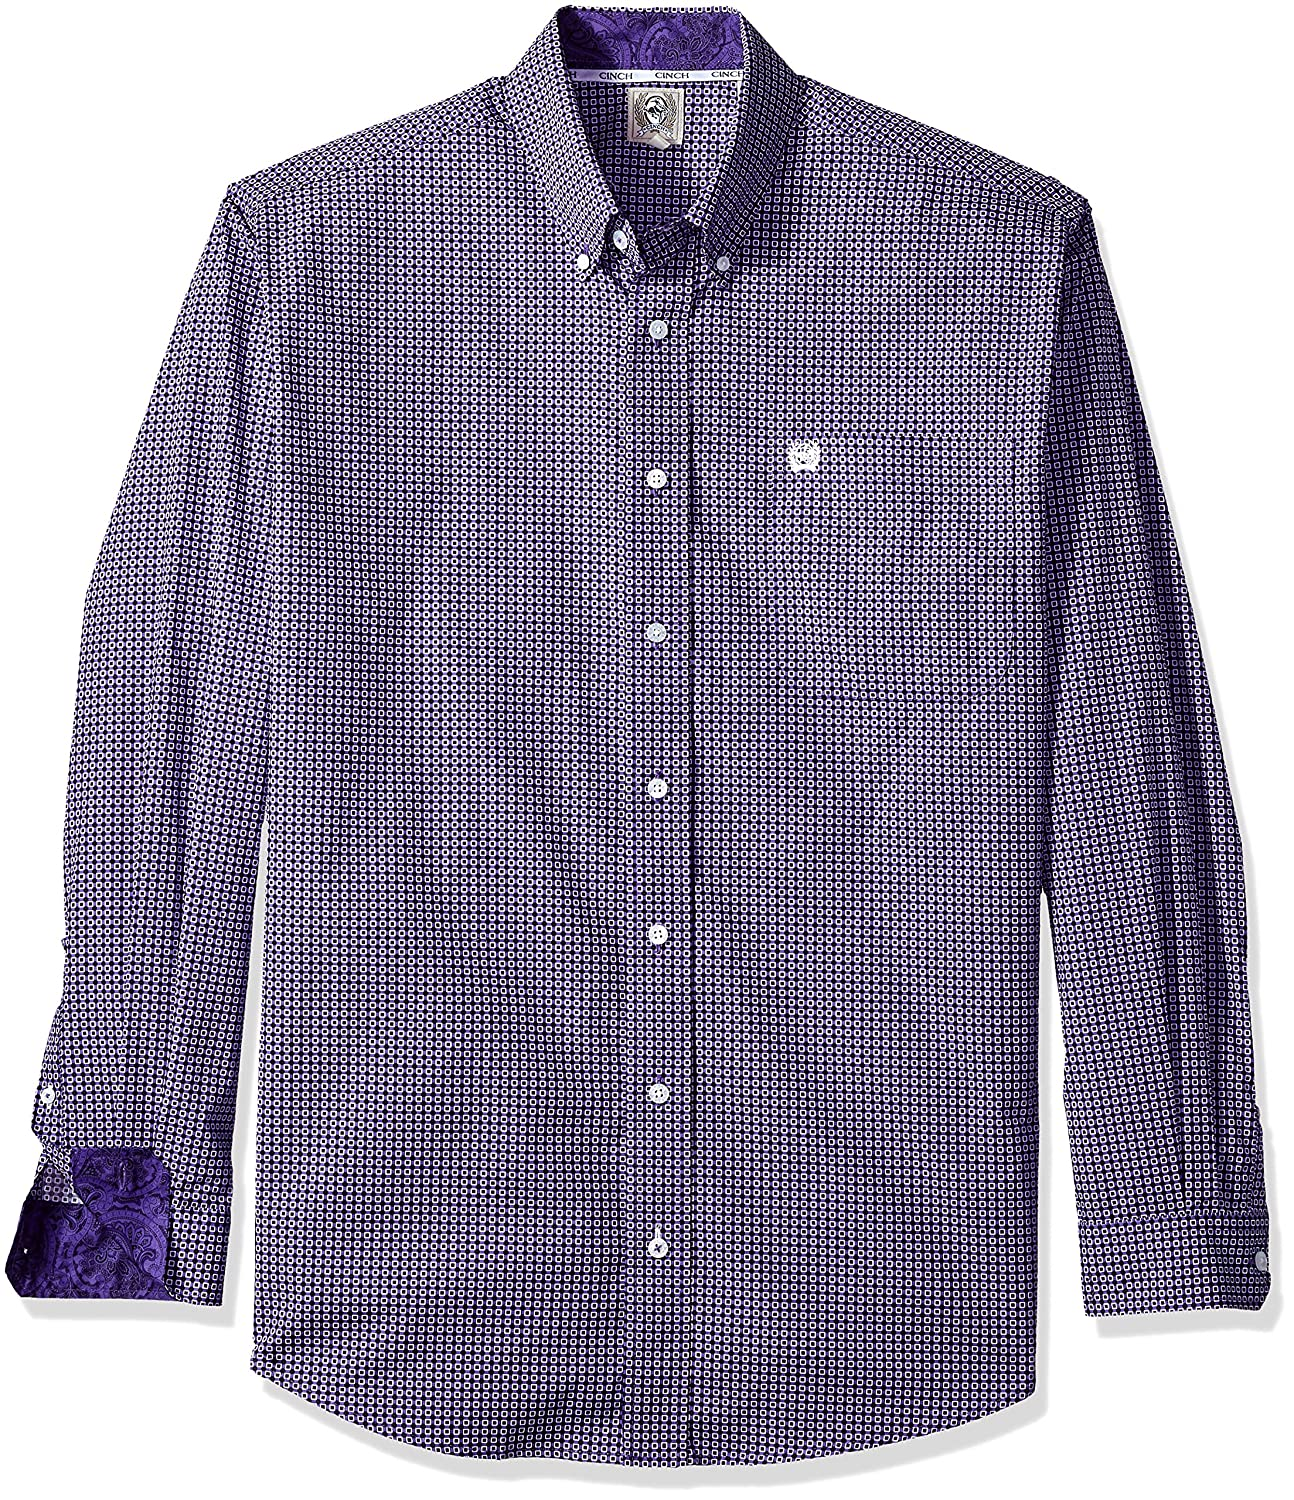 Cinch SHIRT メンズ B074MFV6L1 L|Purple Geometric Purple Geometric L